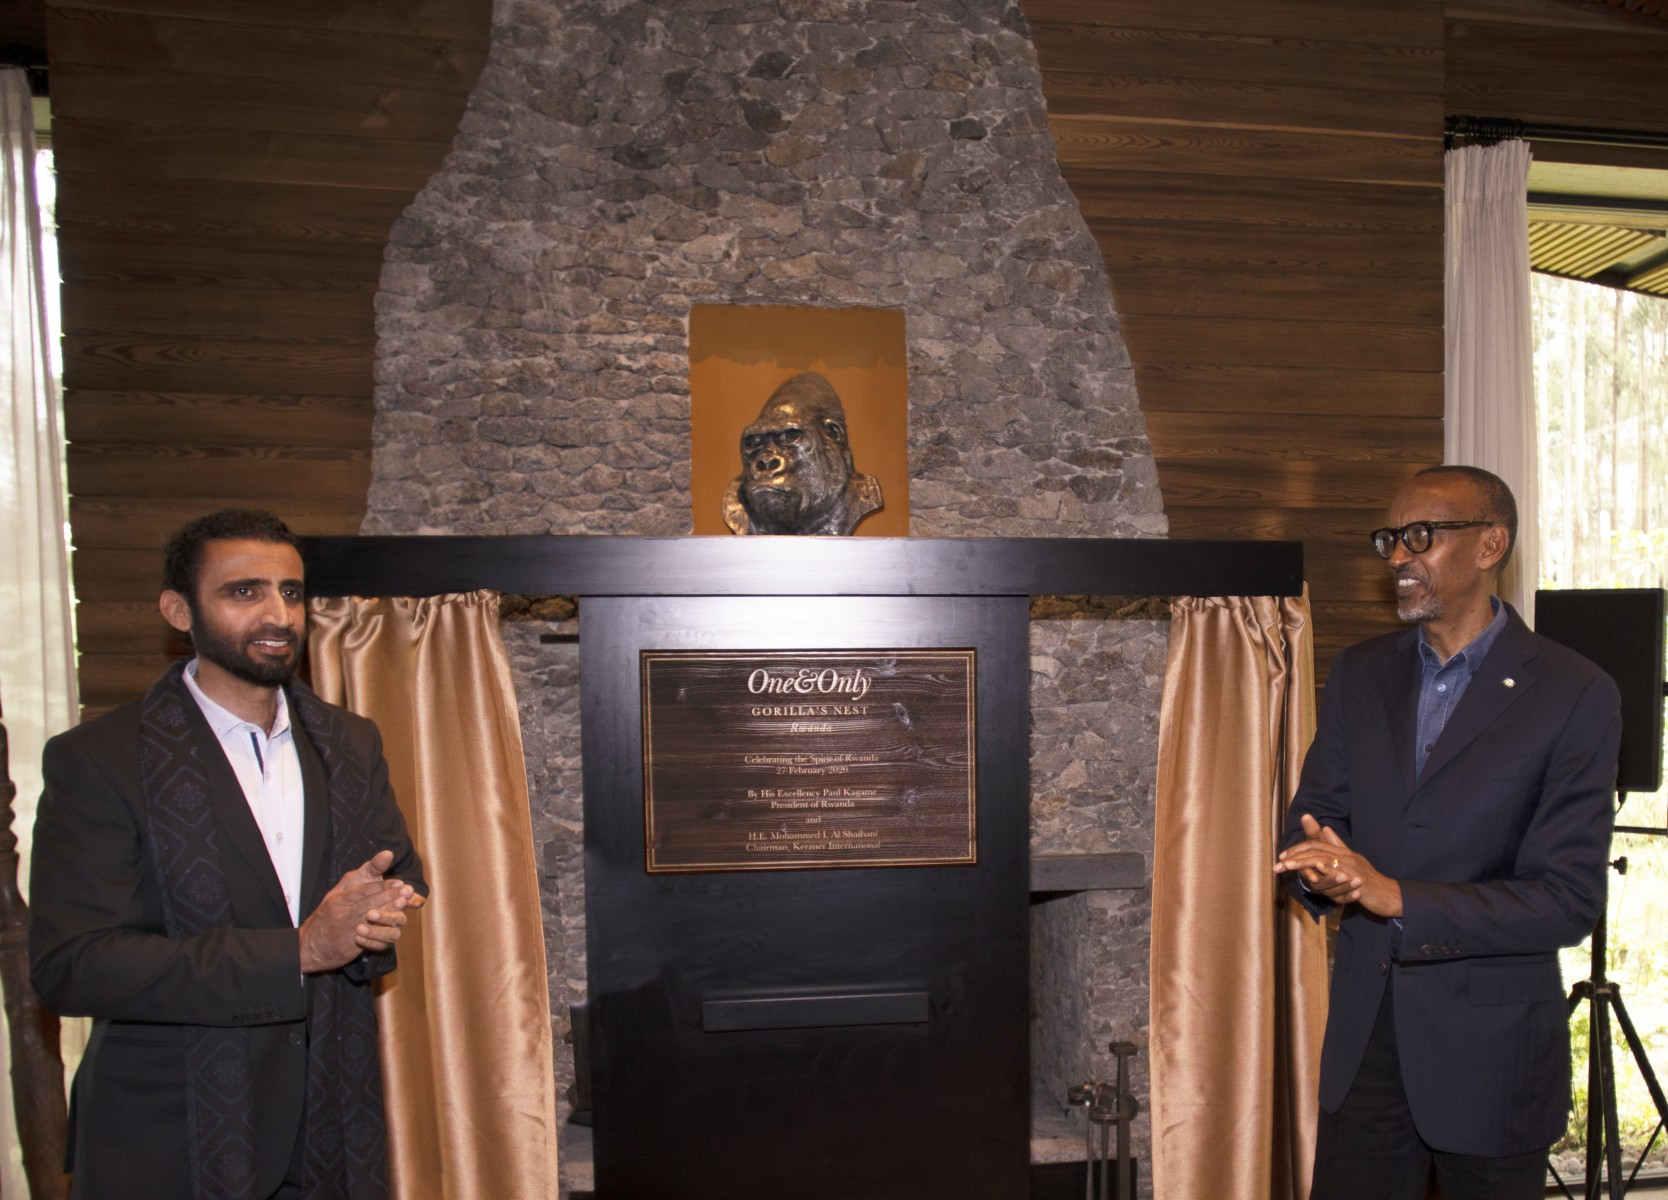 HE Paul Kagame and HE Al Shaibani unveil the plaque at One&Only Gorilla's Nest